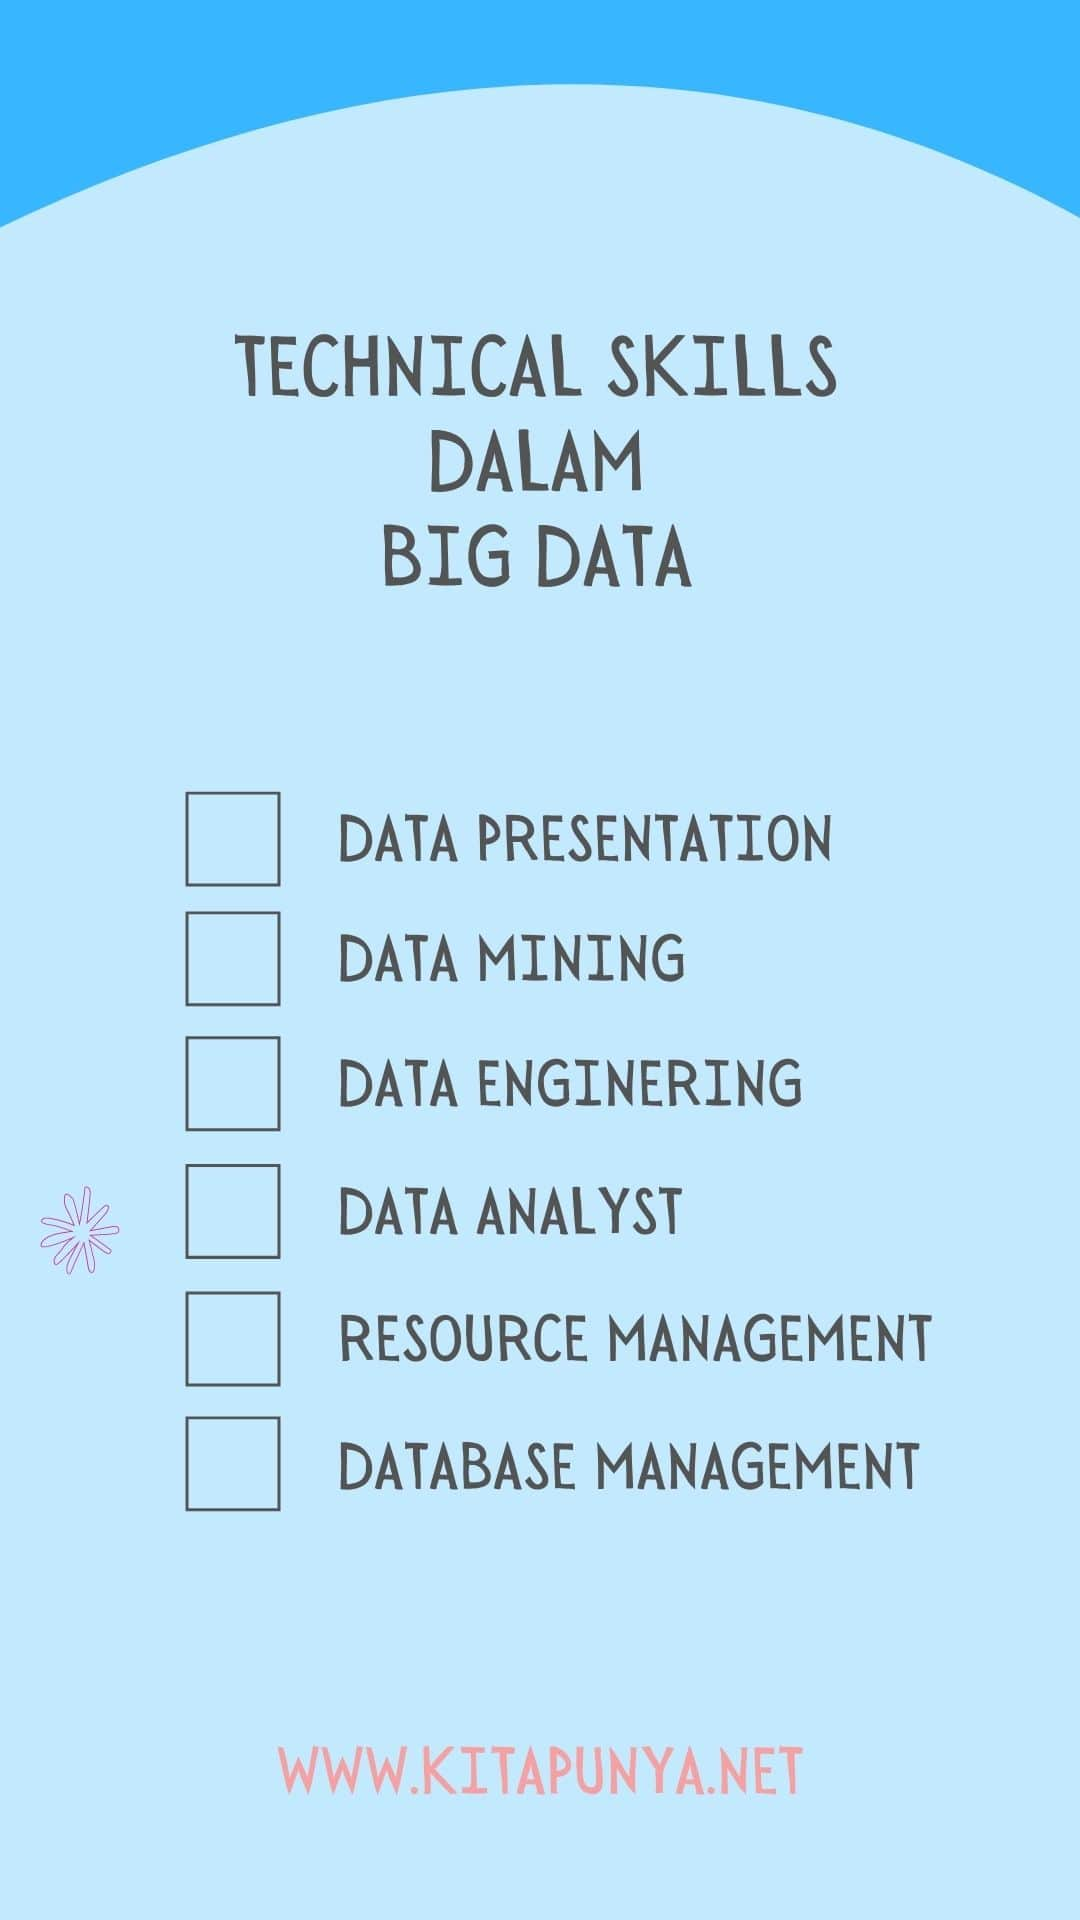 technical skills dalam big data